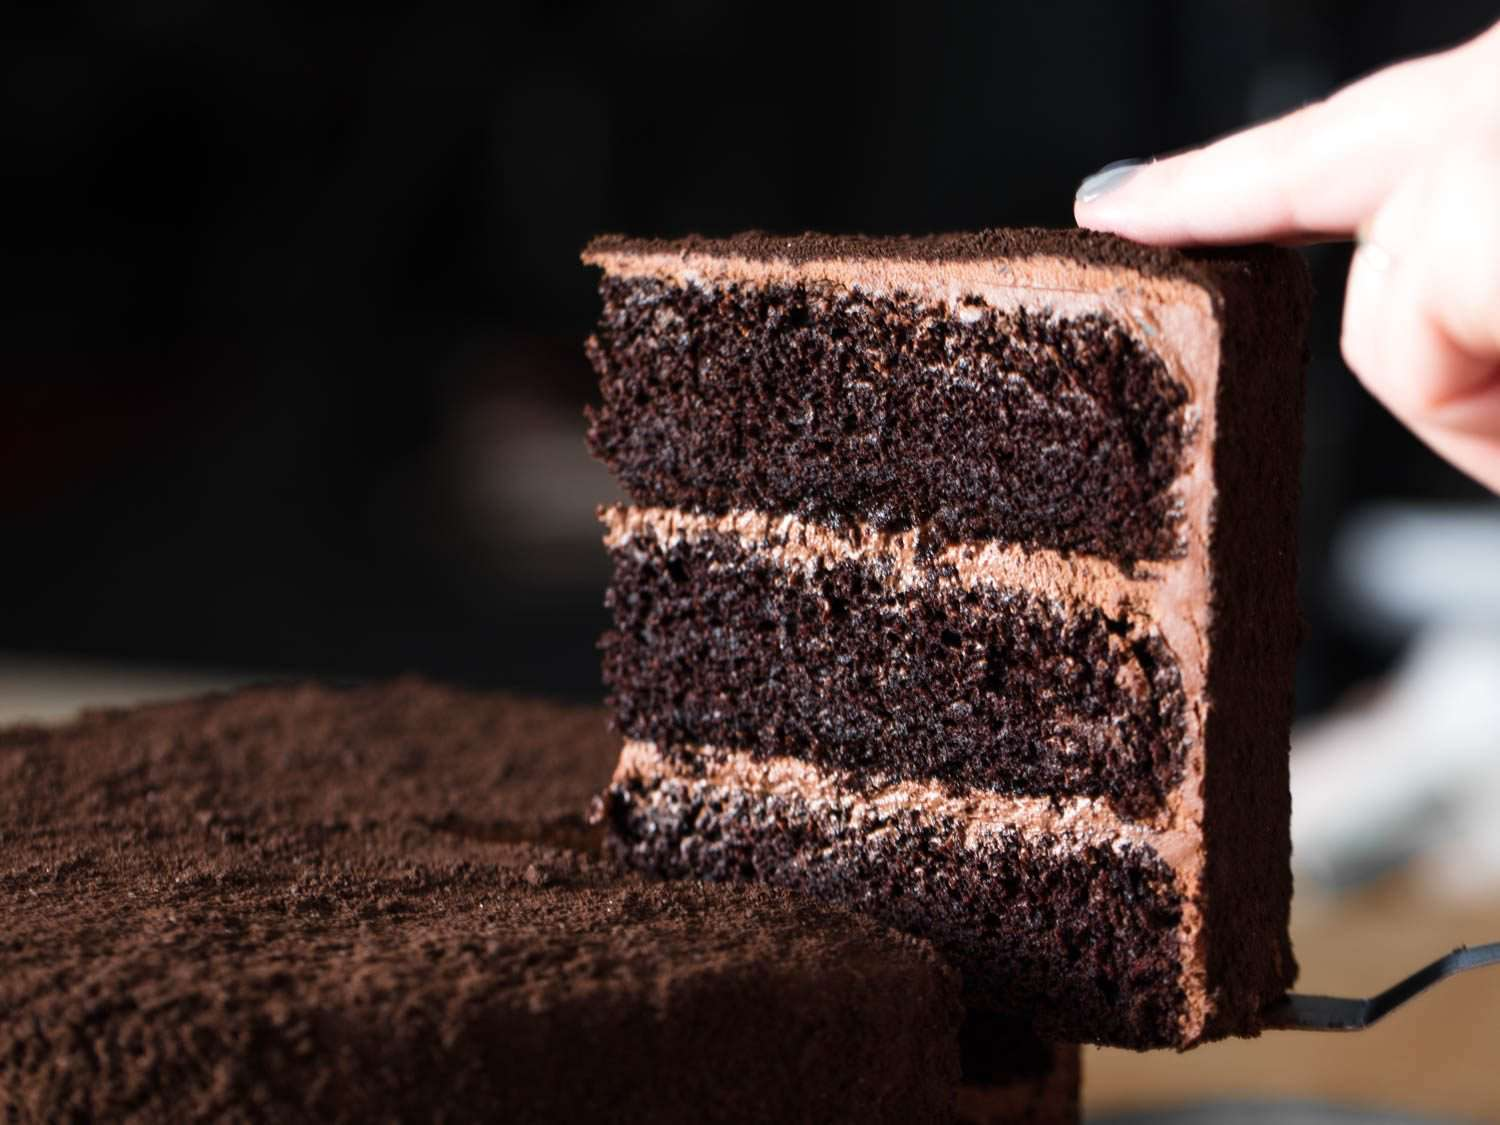 Pulling out a slice of three-layer chocolate Devil's food cake.